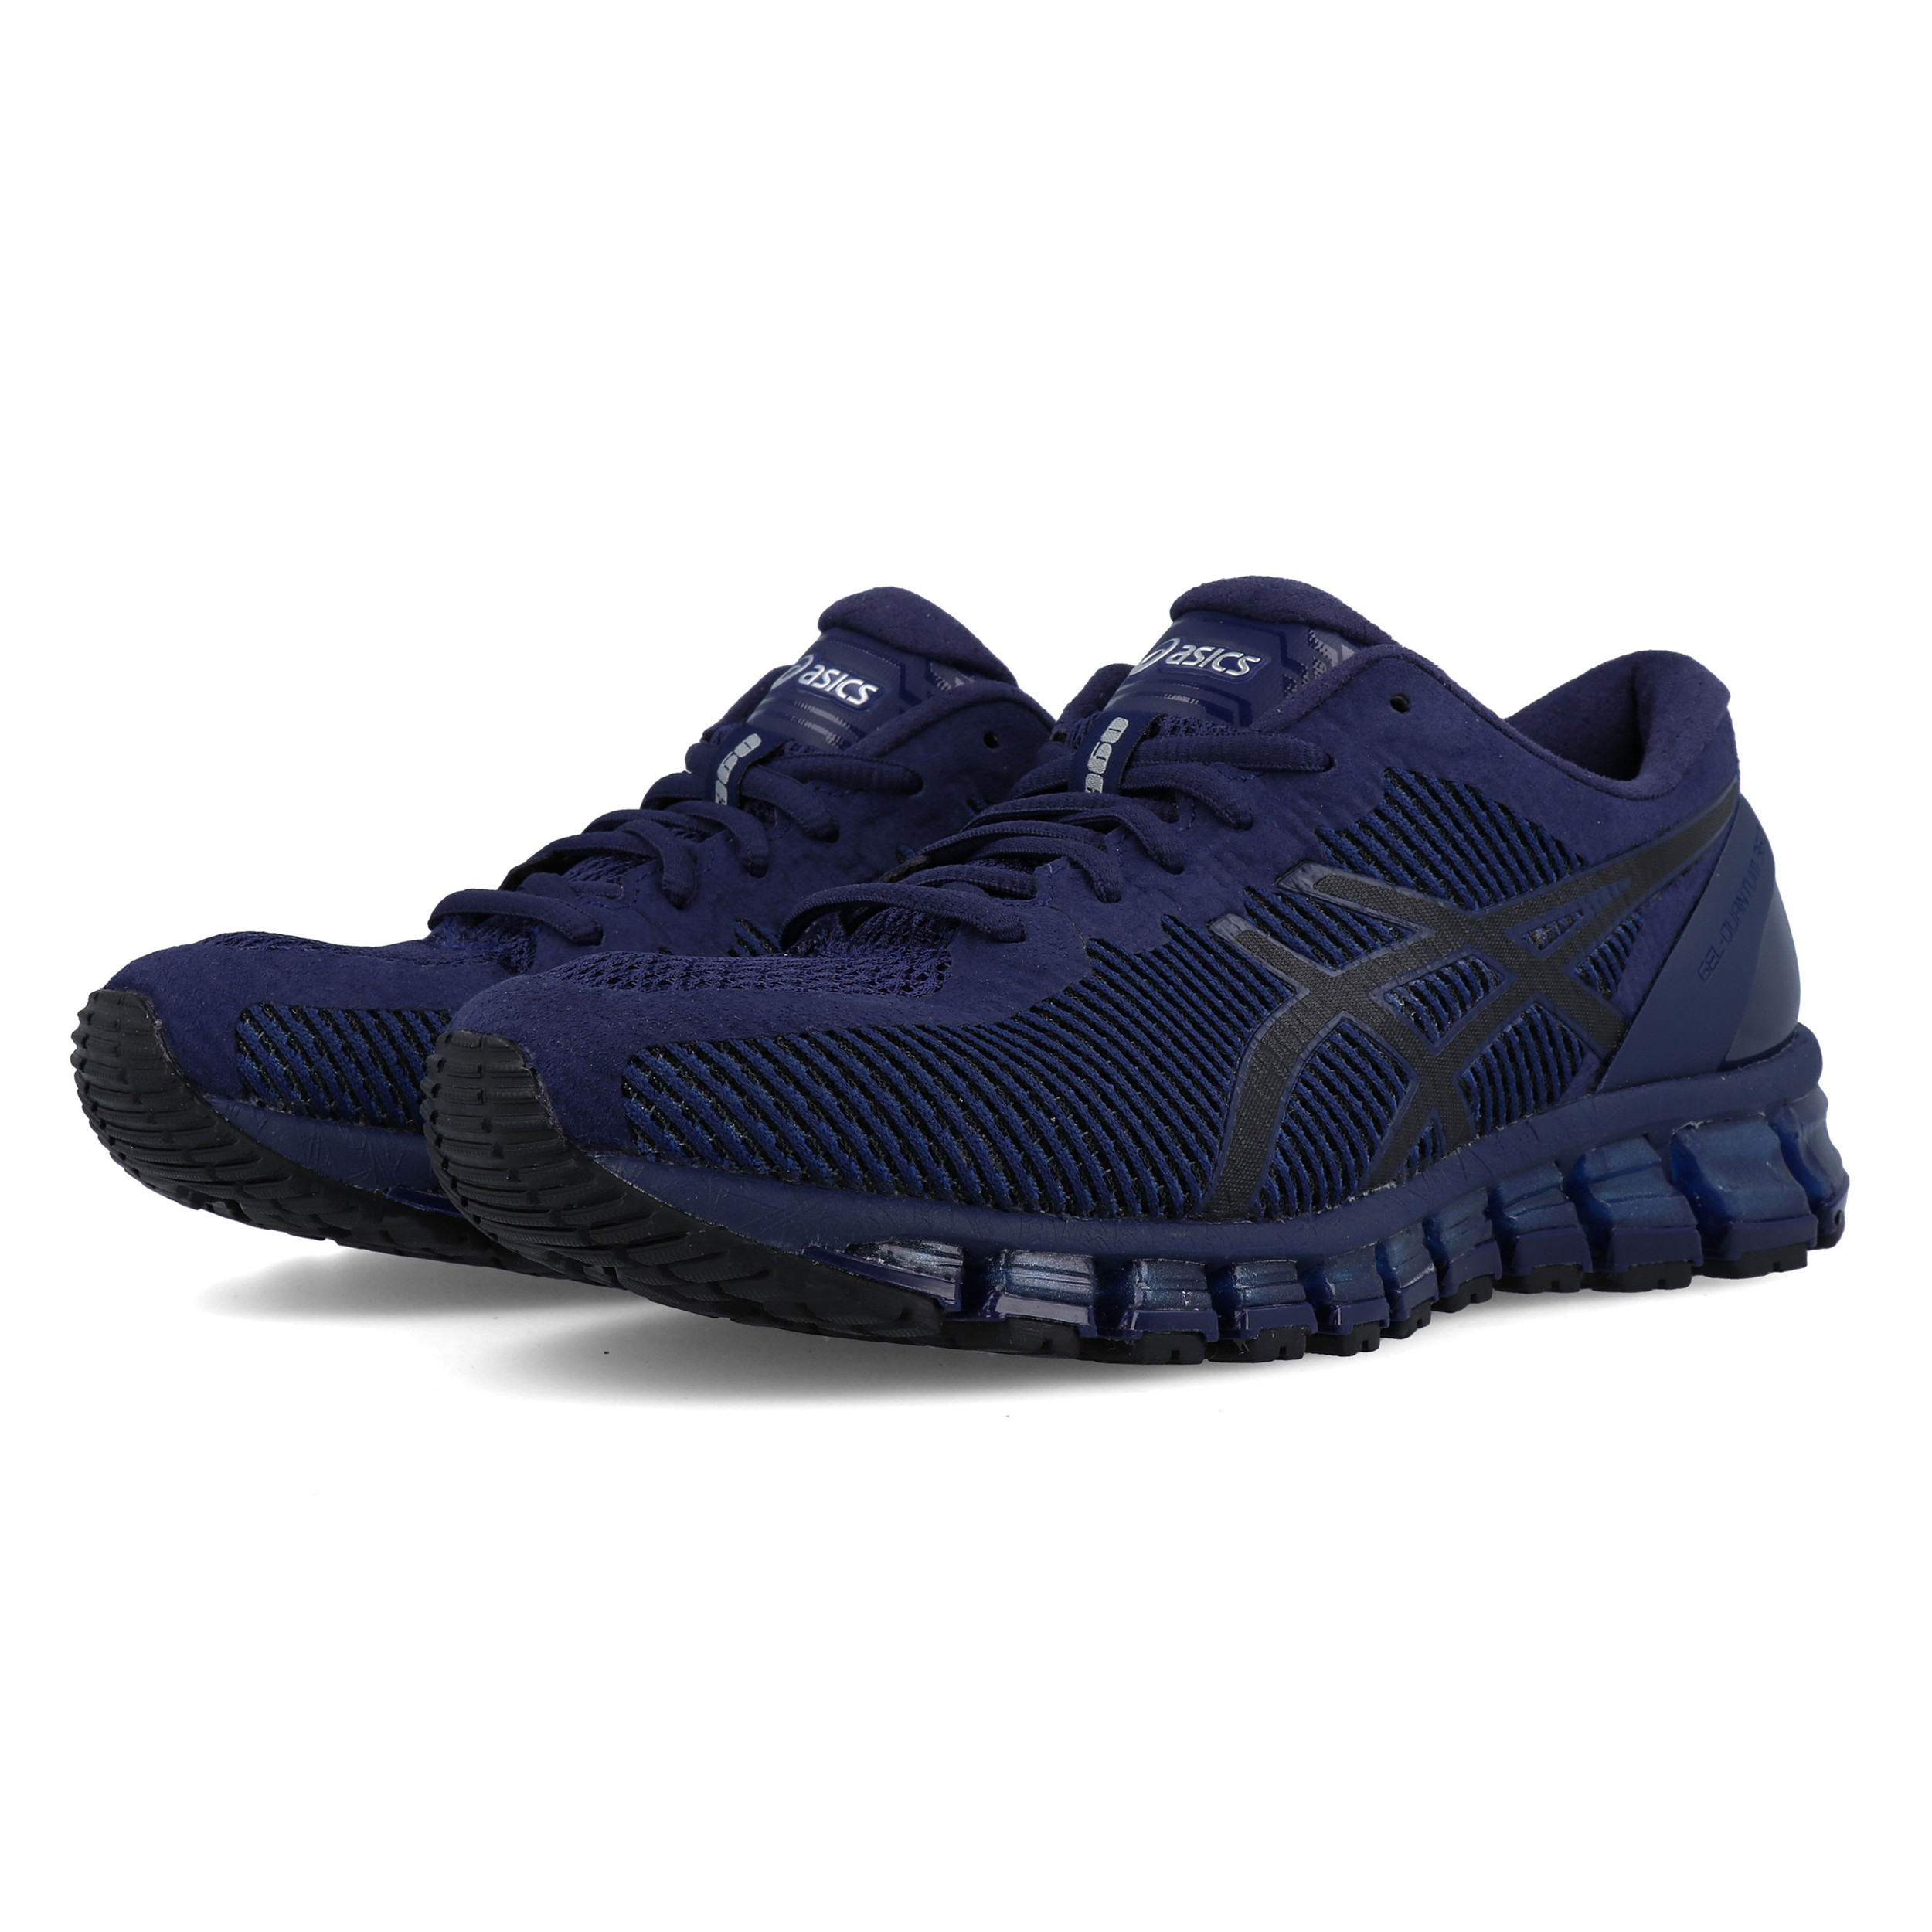 eb09277c Details about Asics Mens Gel-Quantum 360 Running Shoes Trainers Sneakers  Navy Blue Sports